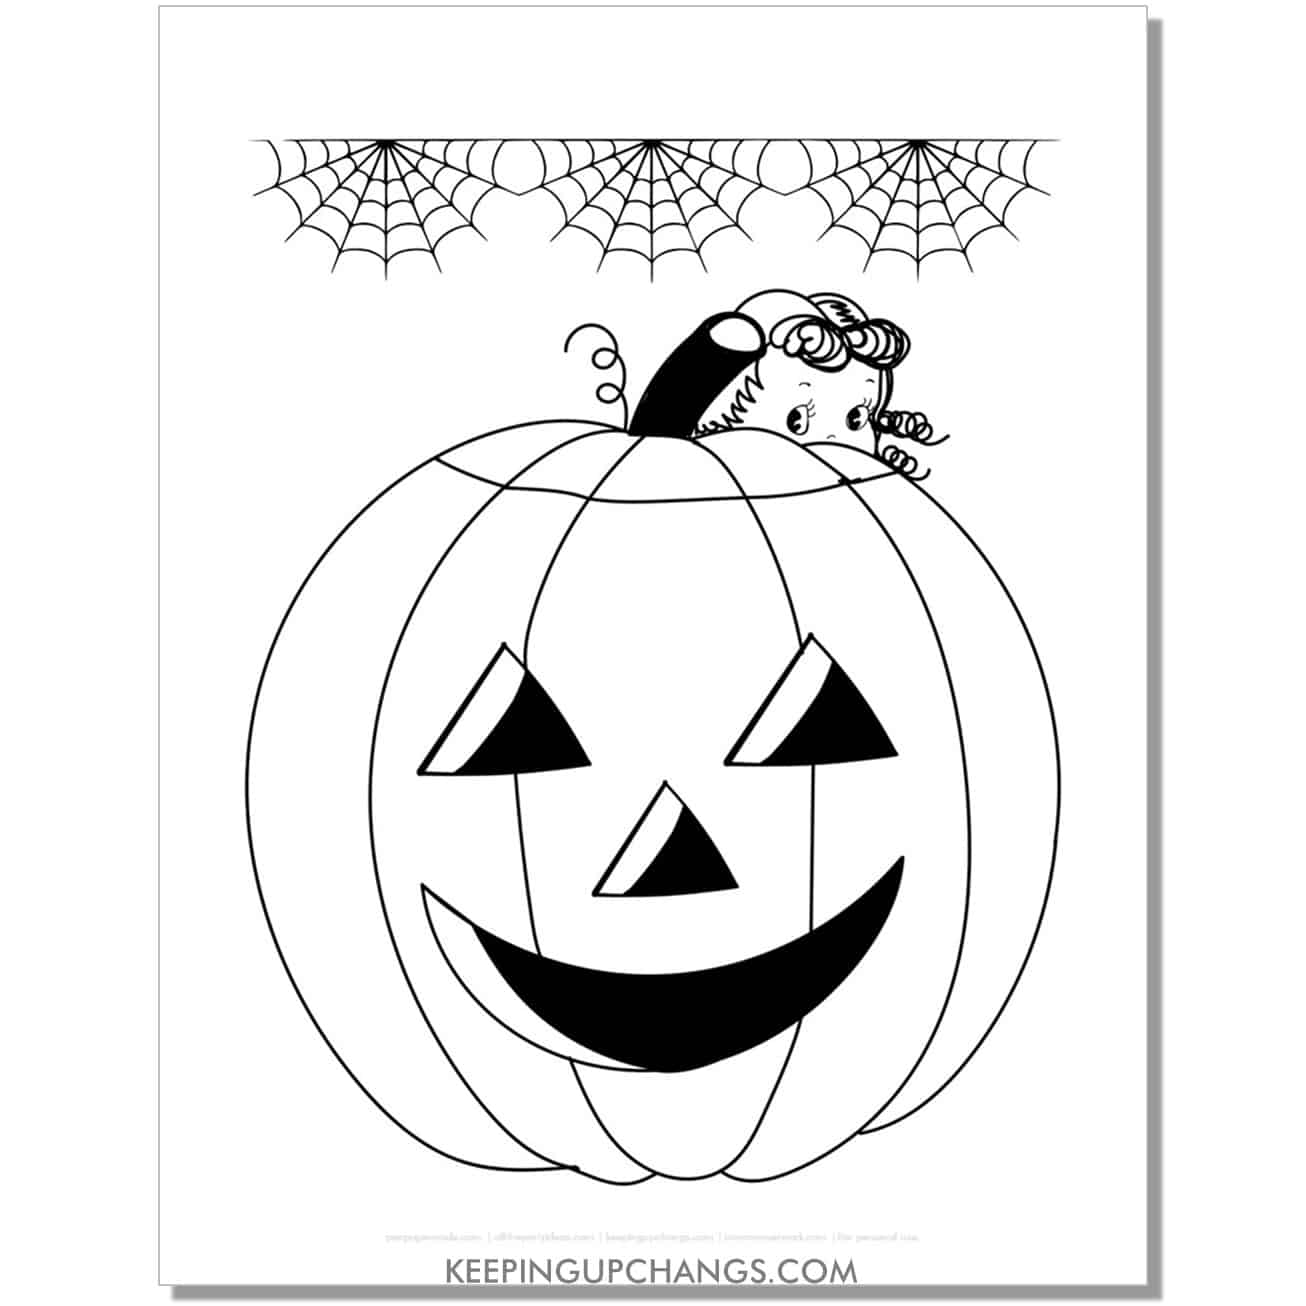 free vintage happy pumpkin jack o lantern with girl and spiderwebscoloring page for fall, thanksgiving.